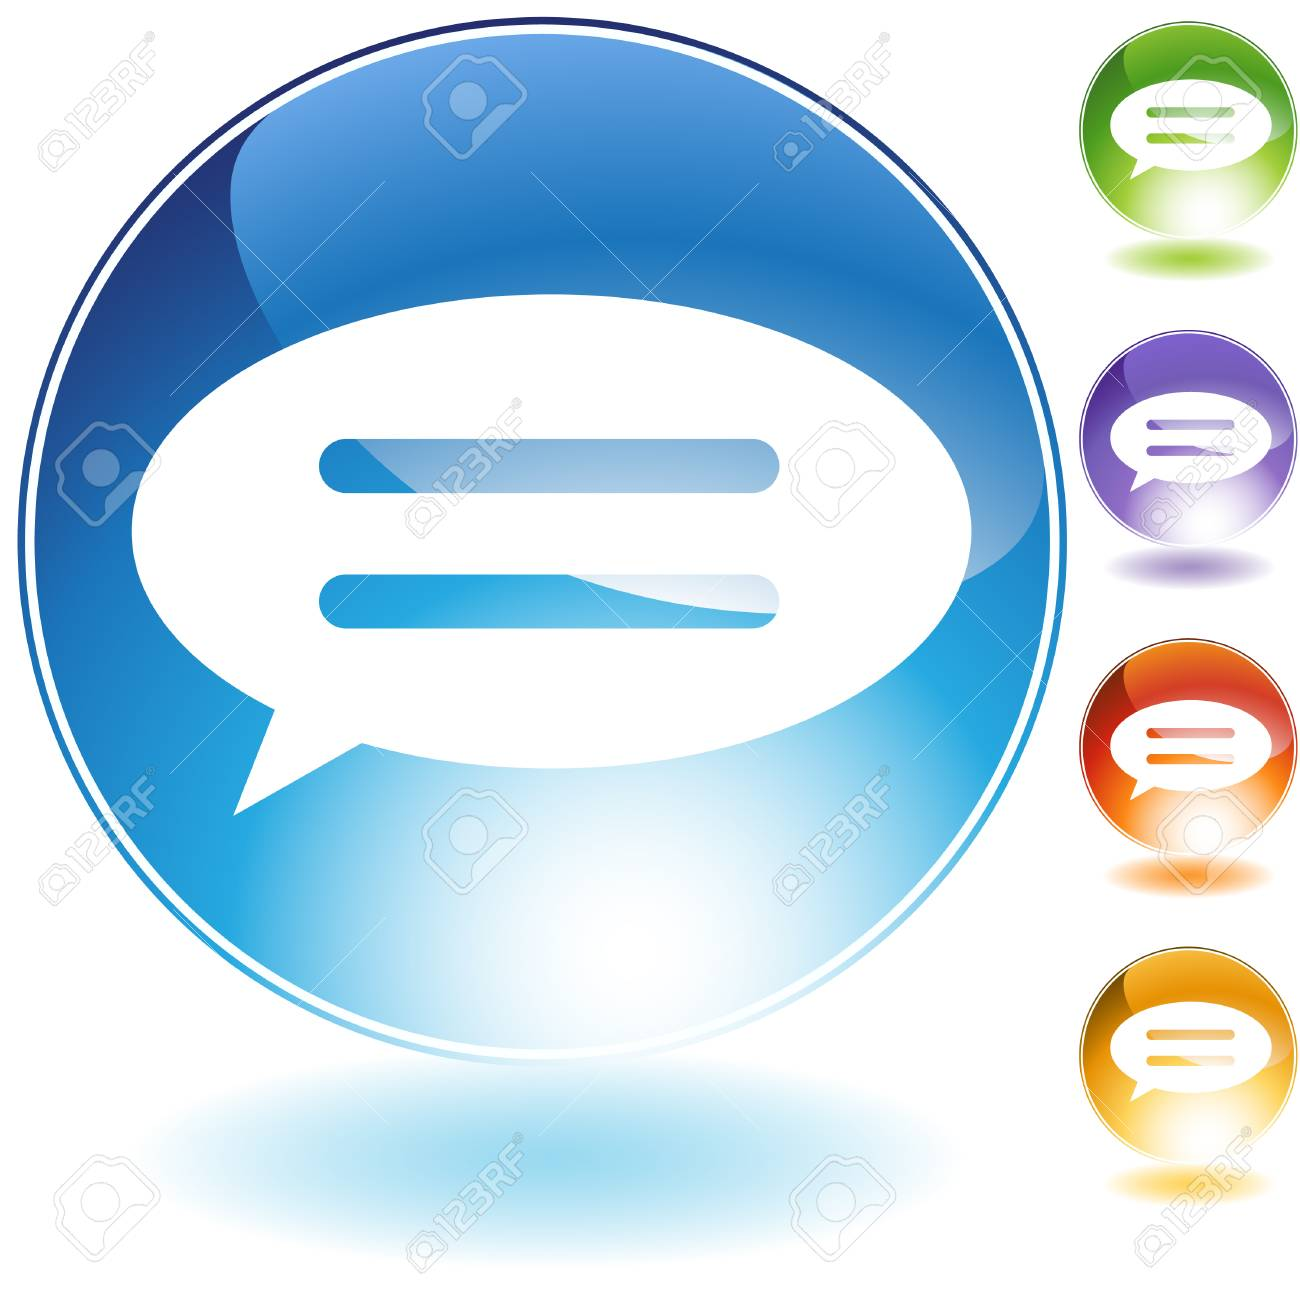 speech bubble crystal isolated on a white background. Stock Vector - 5807904